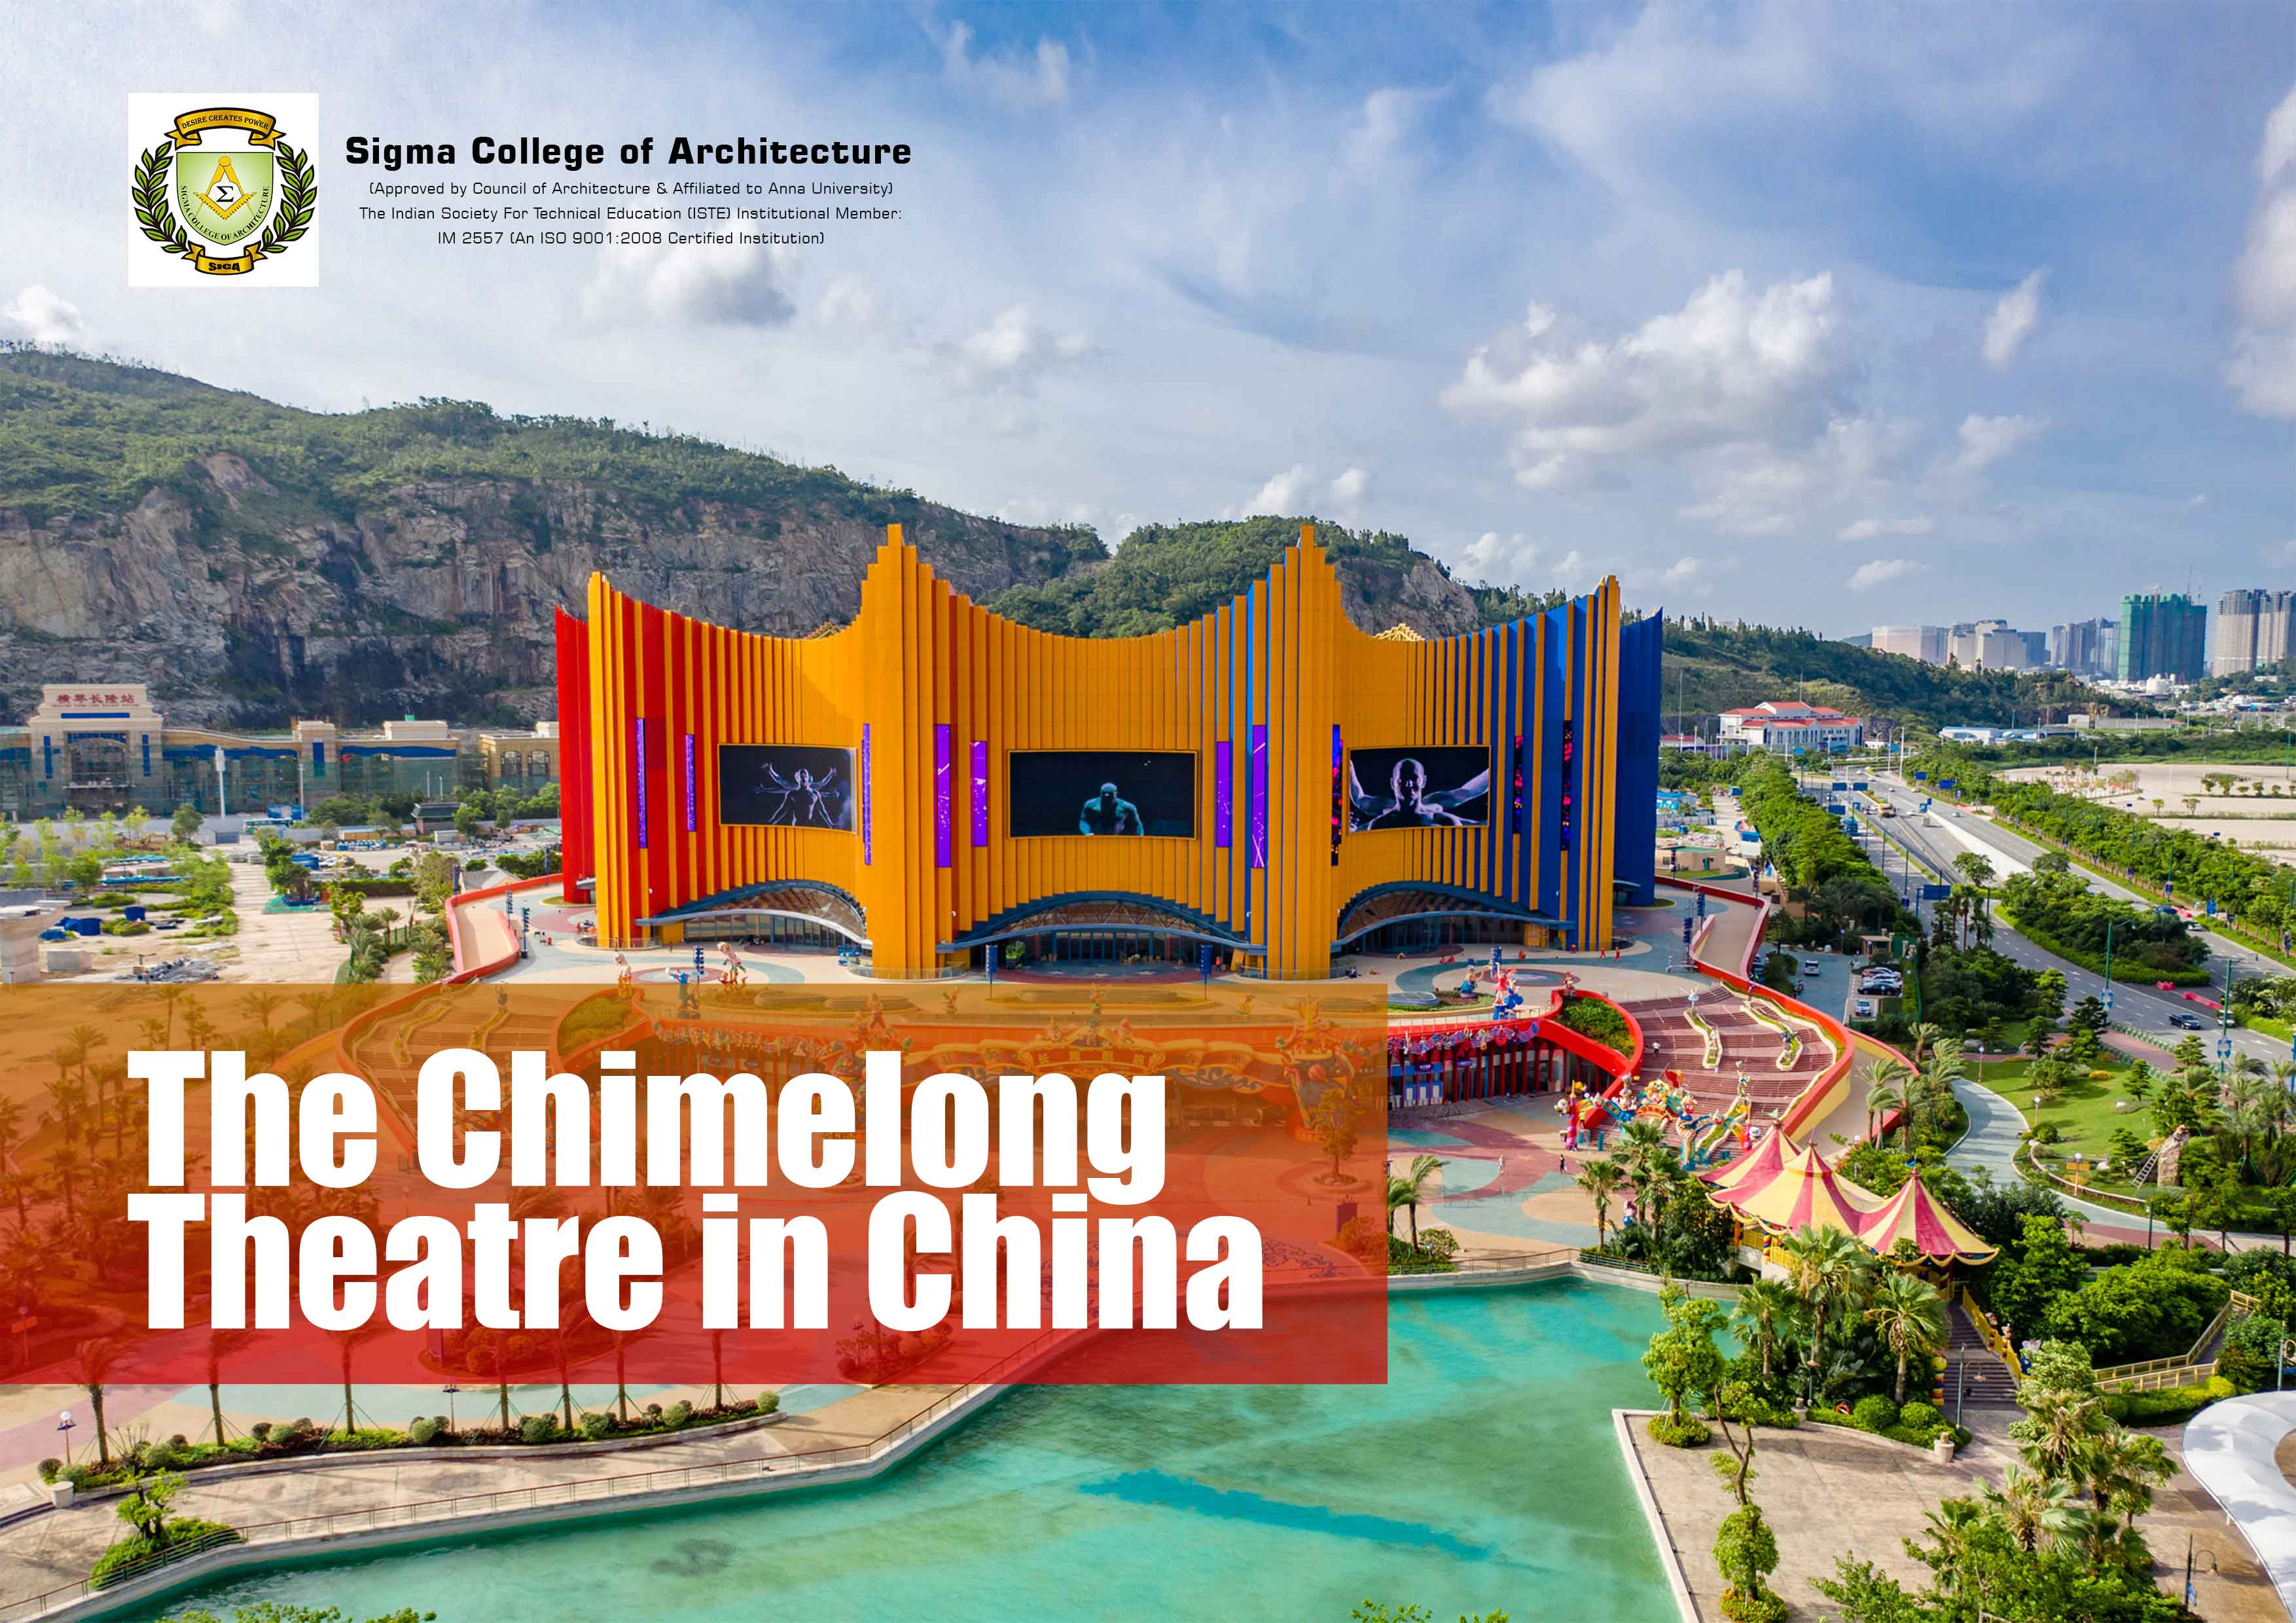 The Chimelong Theatre in China